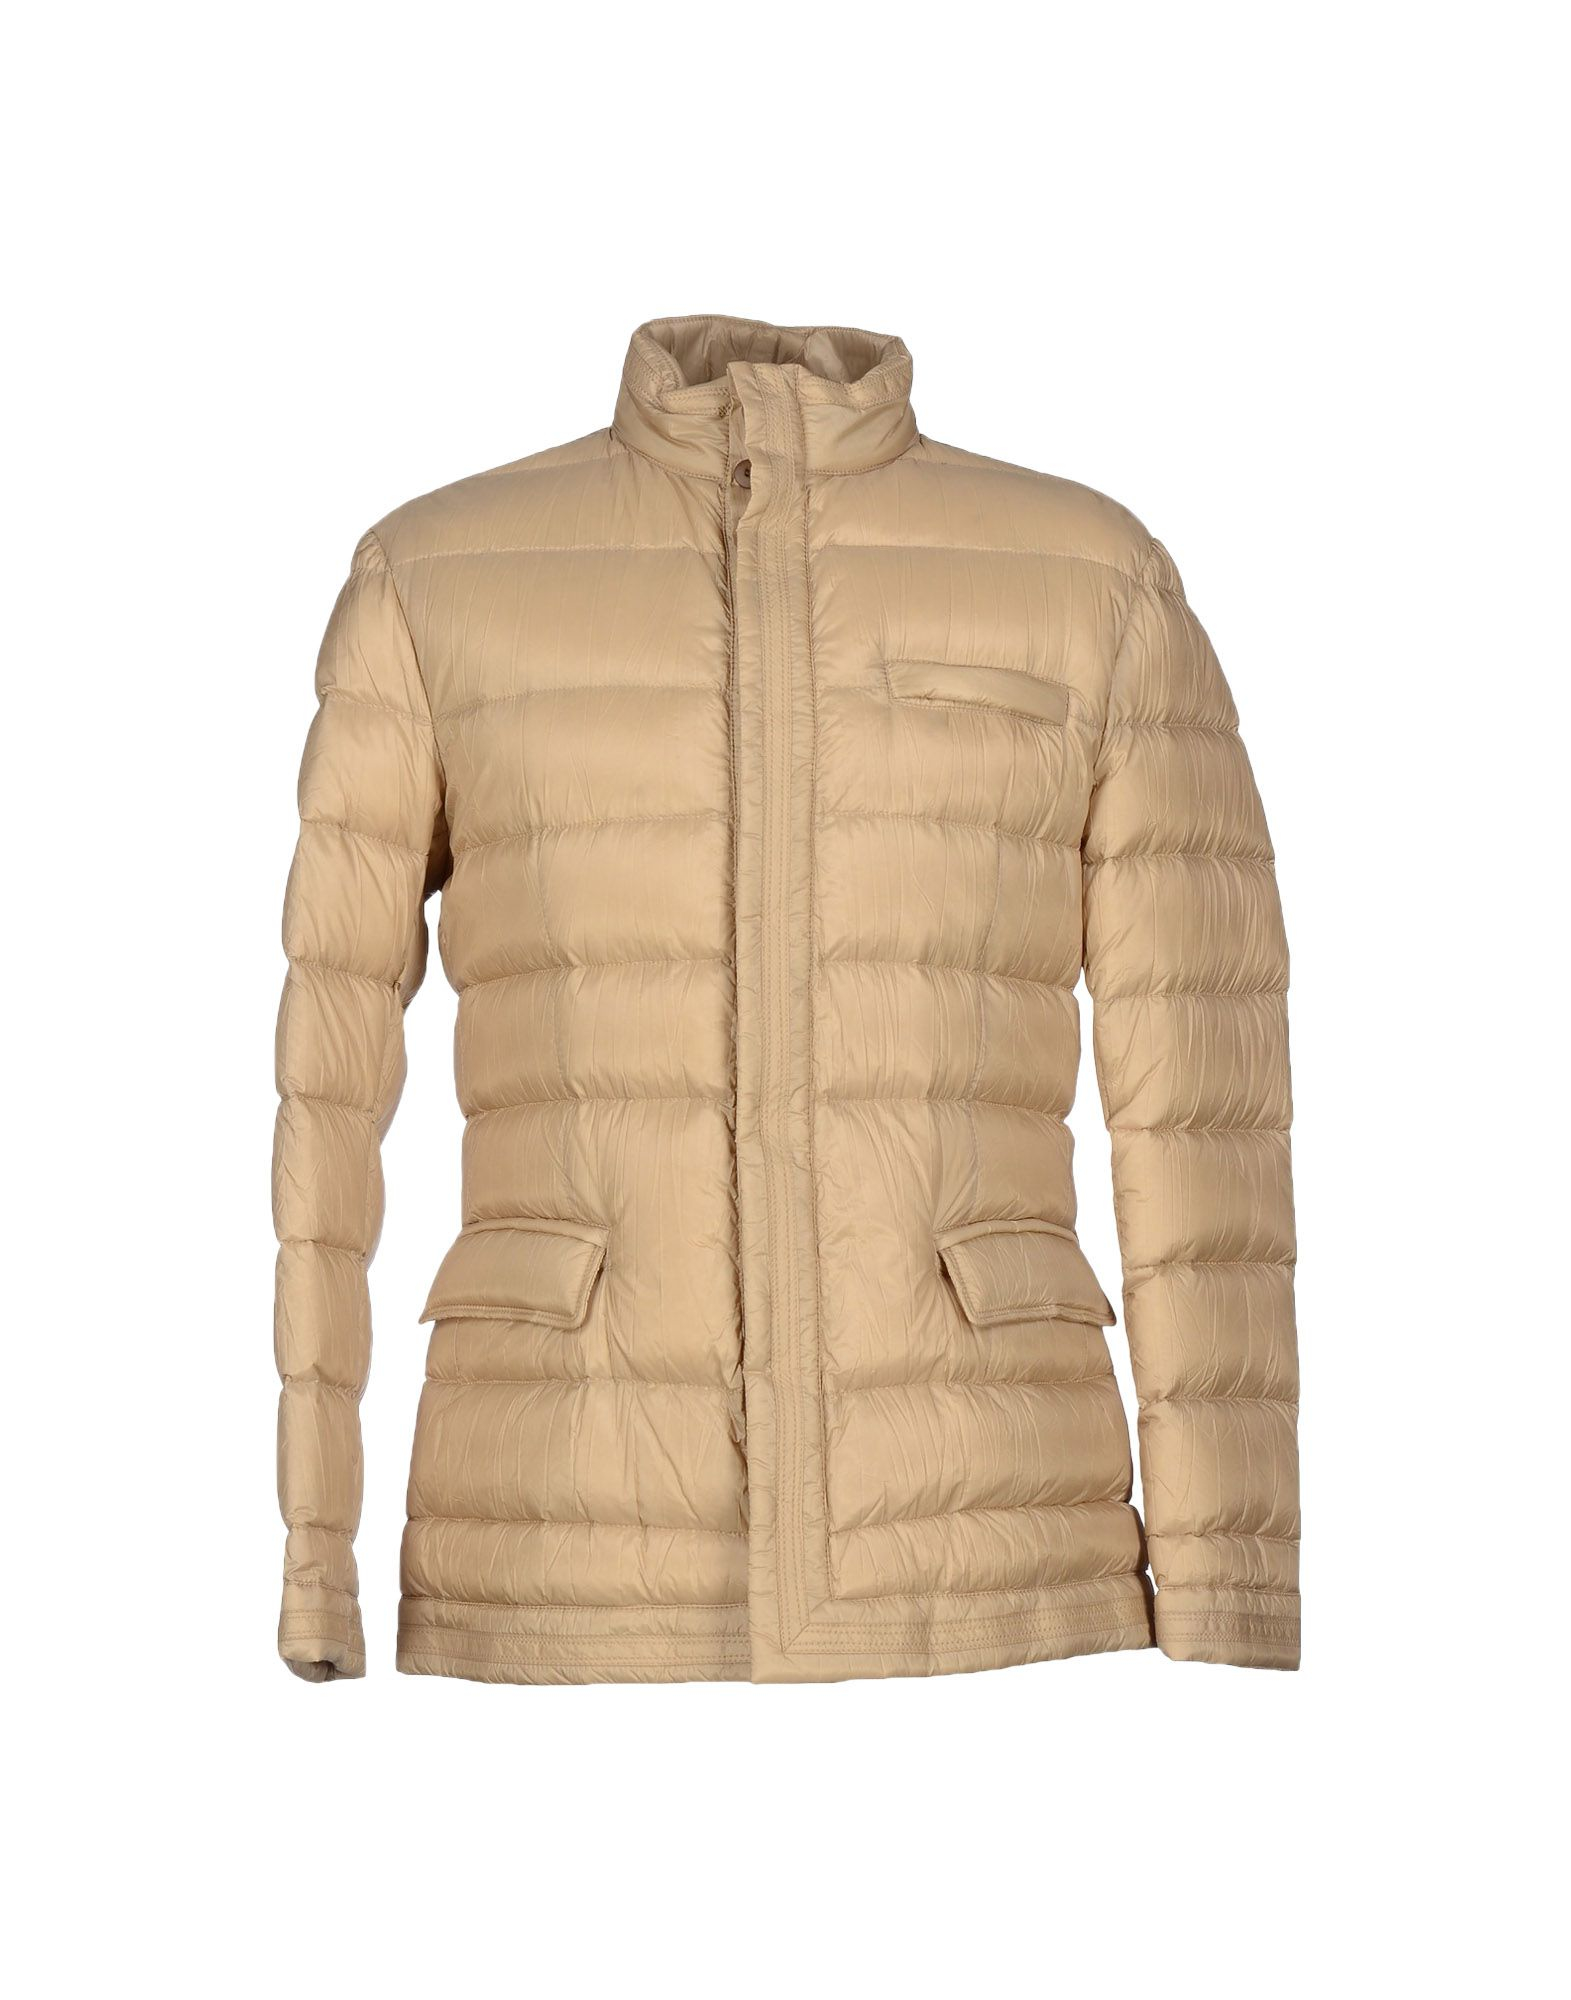 Ermanno scervino Down Jacket in Natural for Men